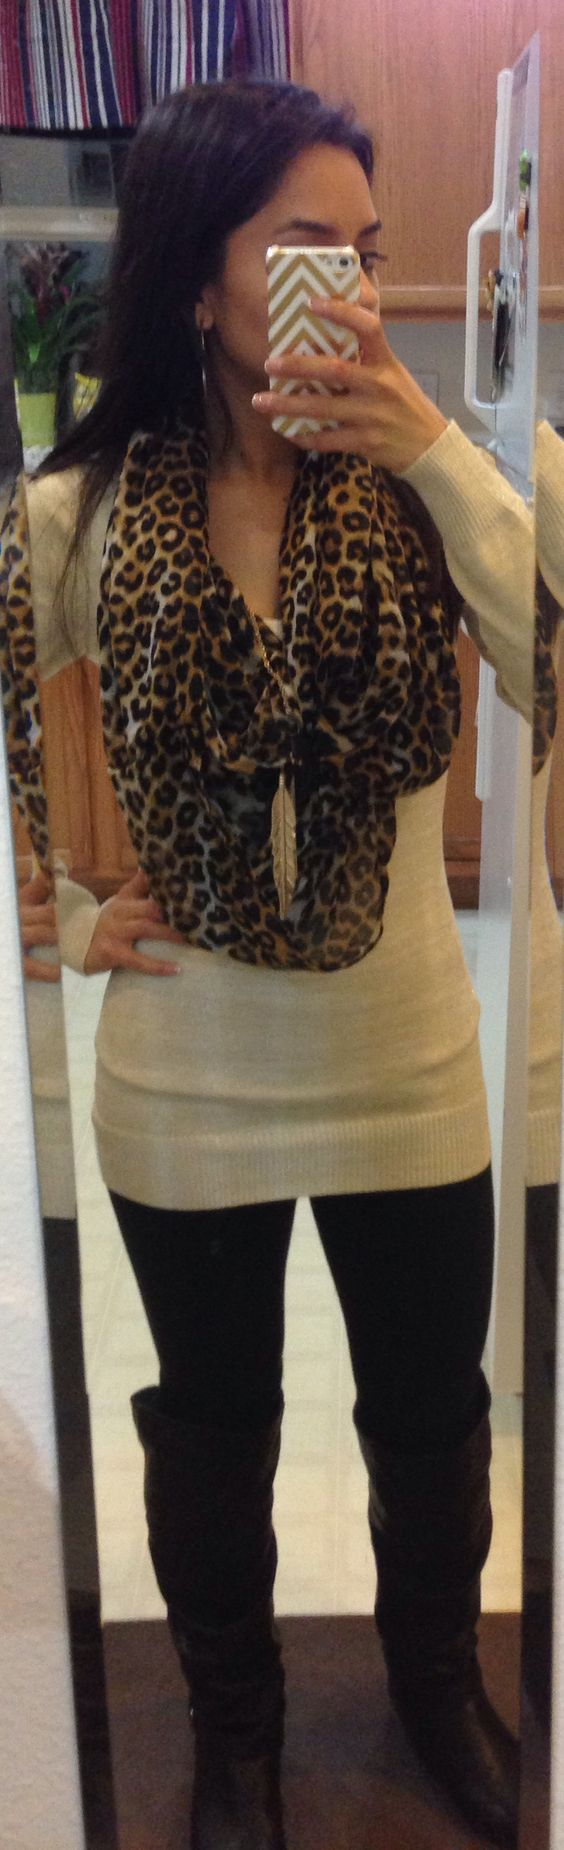 High boots, leopard, gold and cream fitted sweater